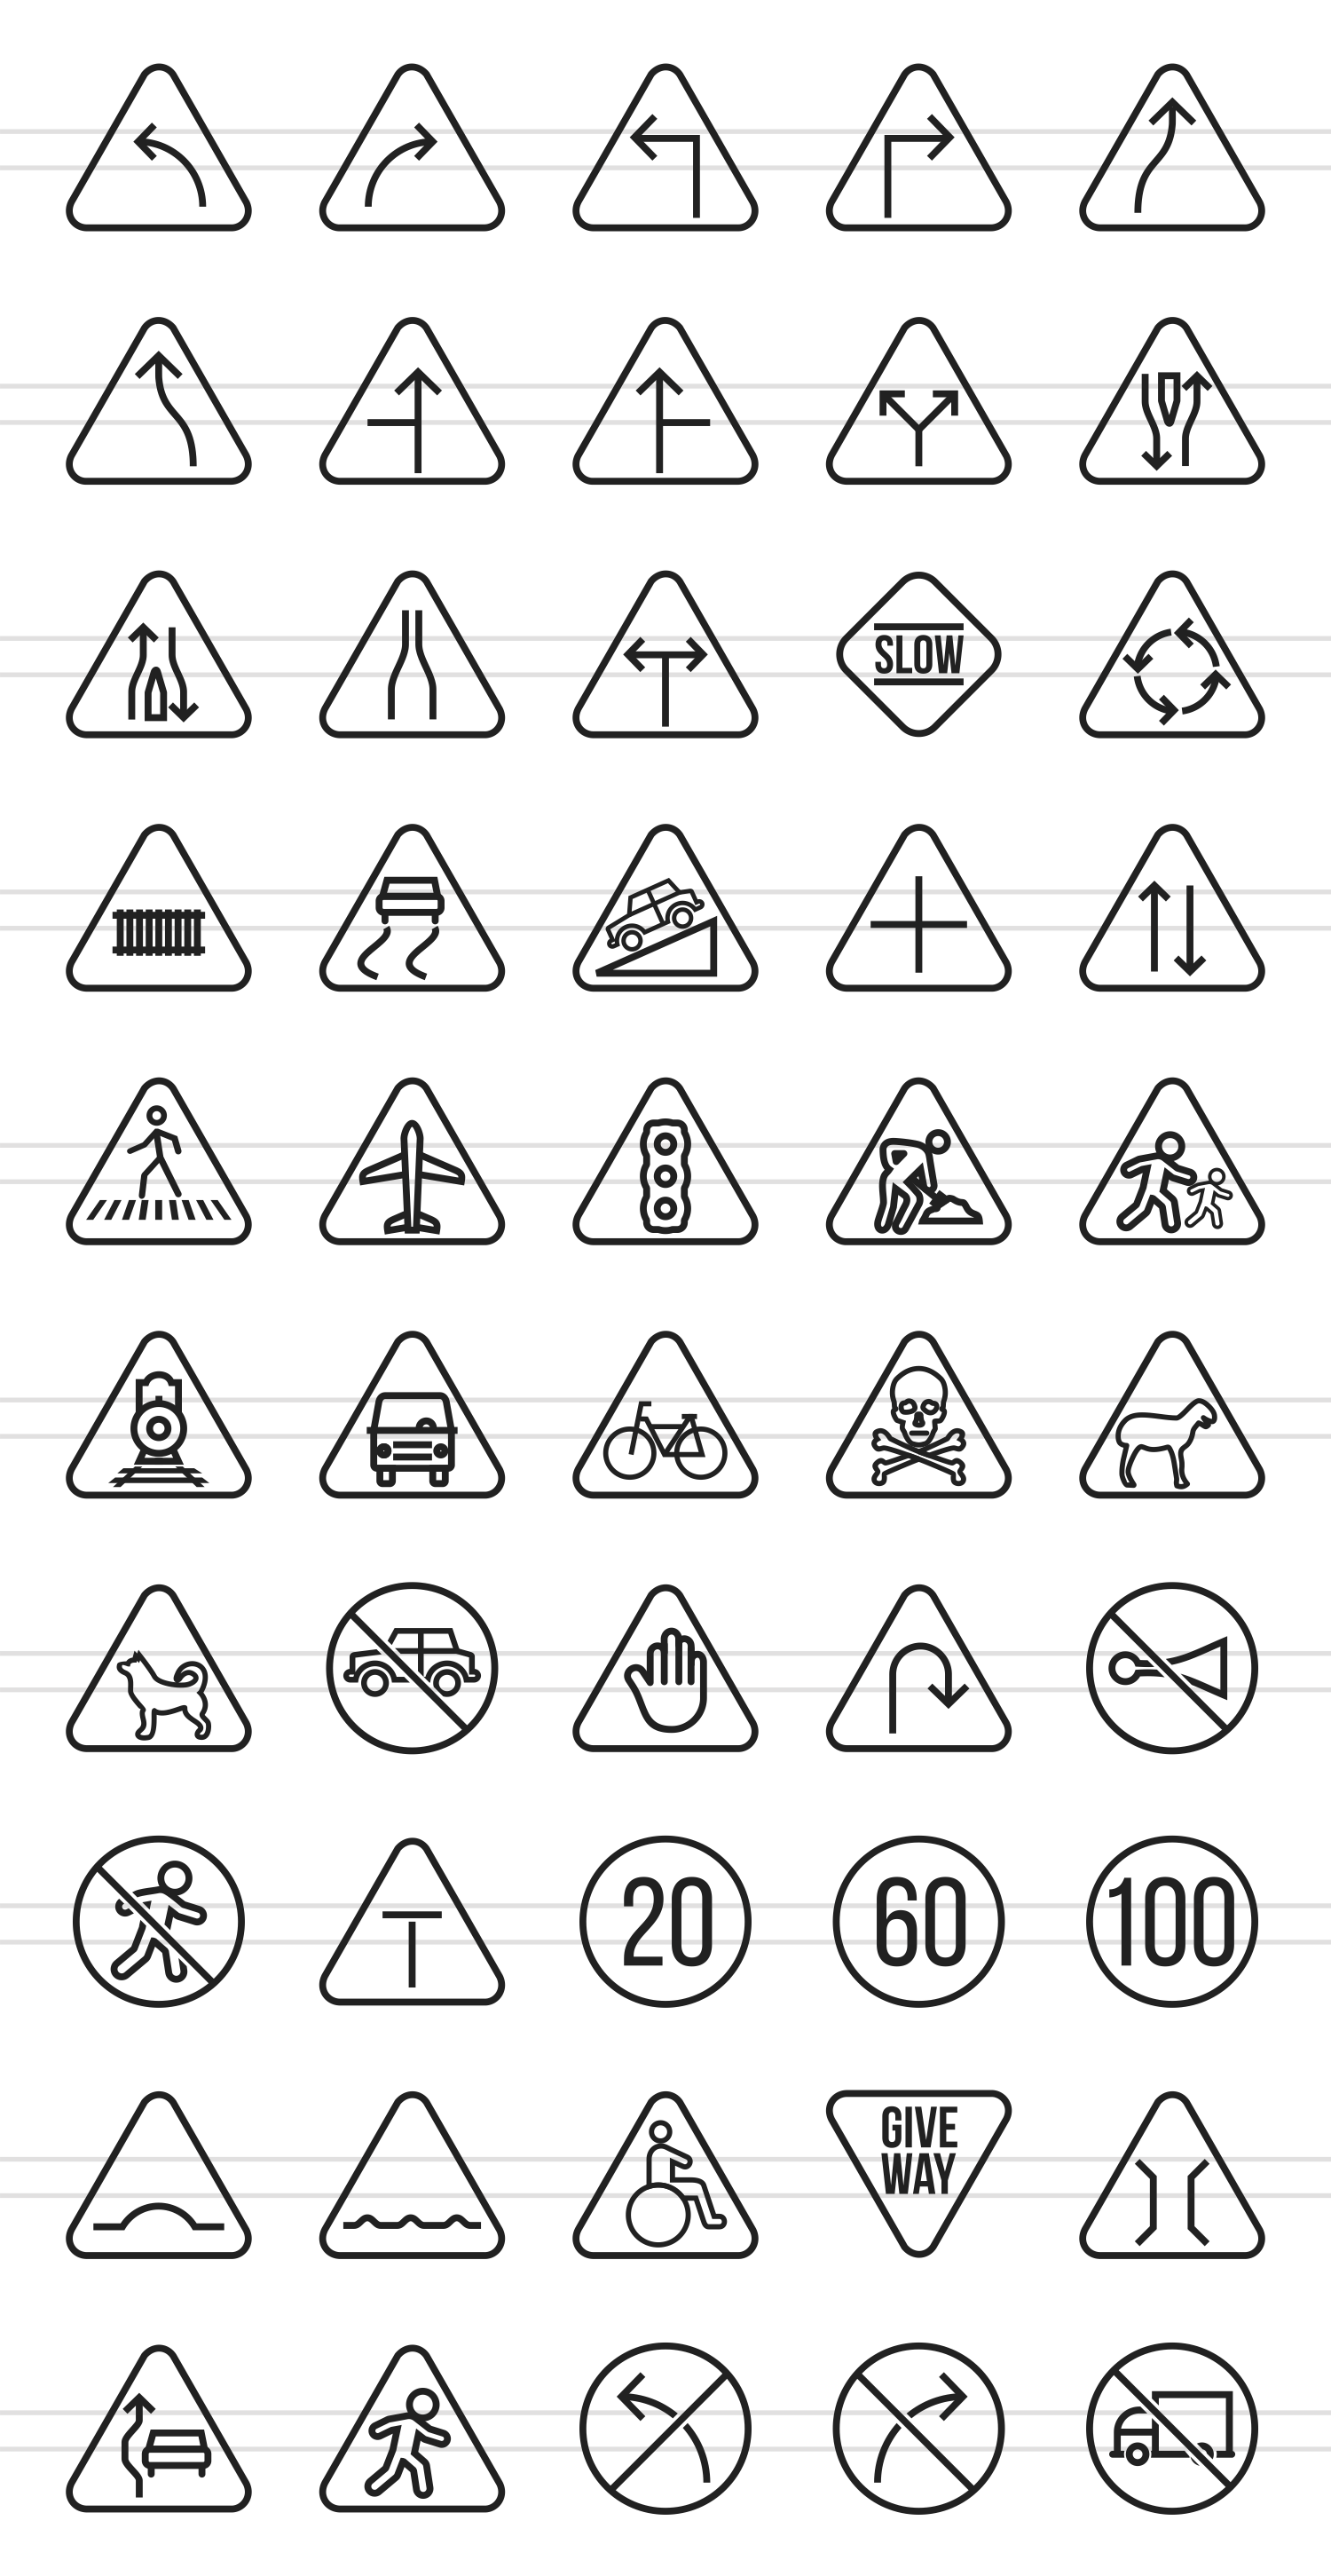 50 Traffic Signs Line Icons example image 2